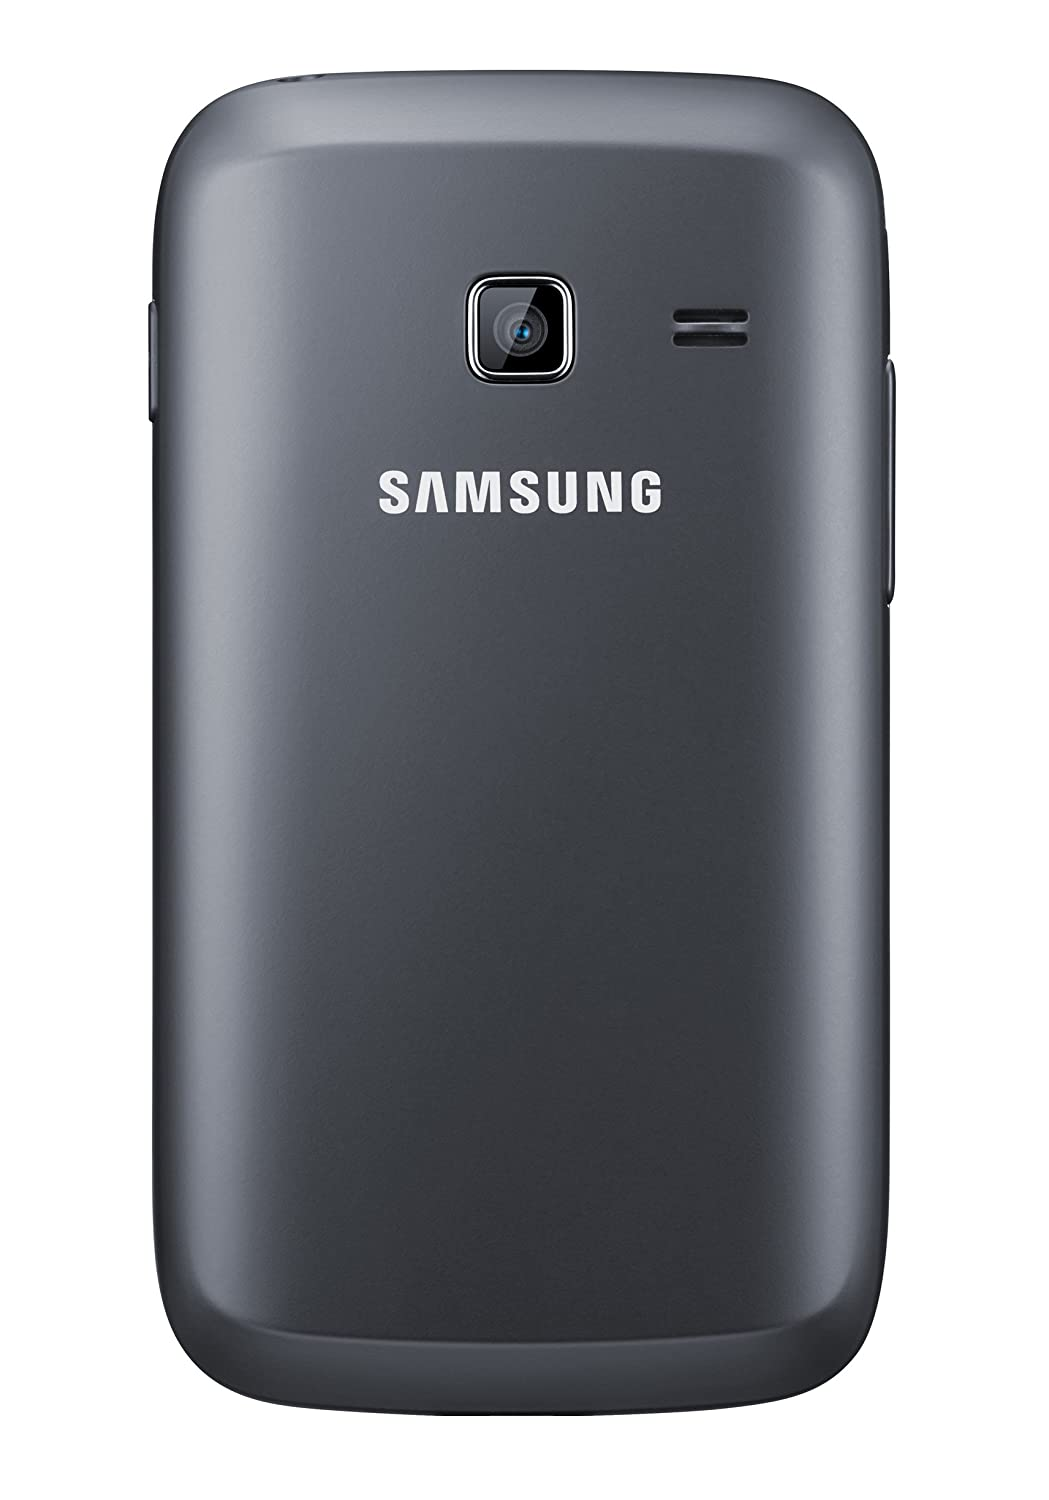 Gallery for gt samsung galaxy s6102 - Gallery For Gt Samsung Galaxy S6102 24